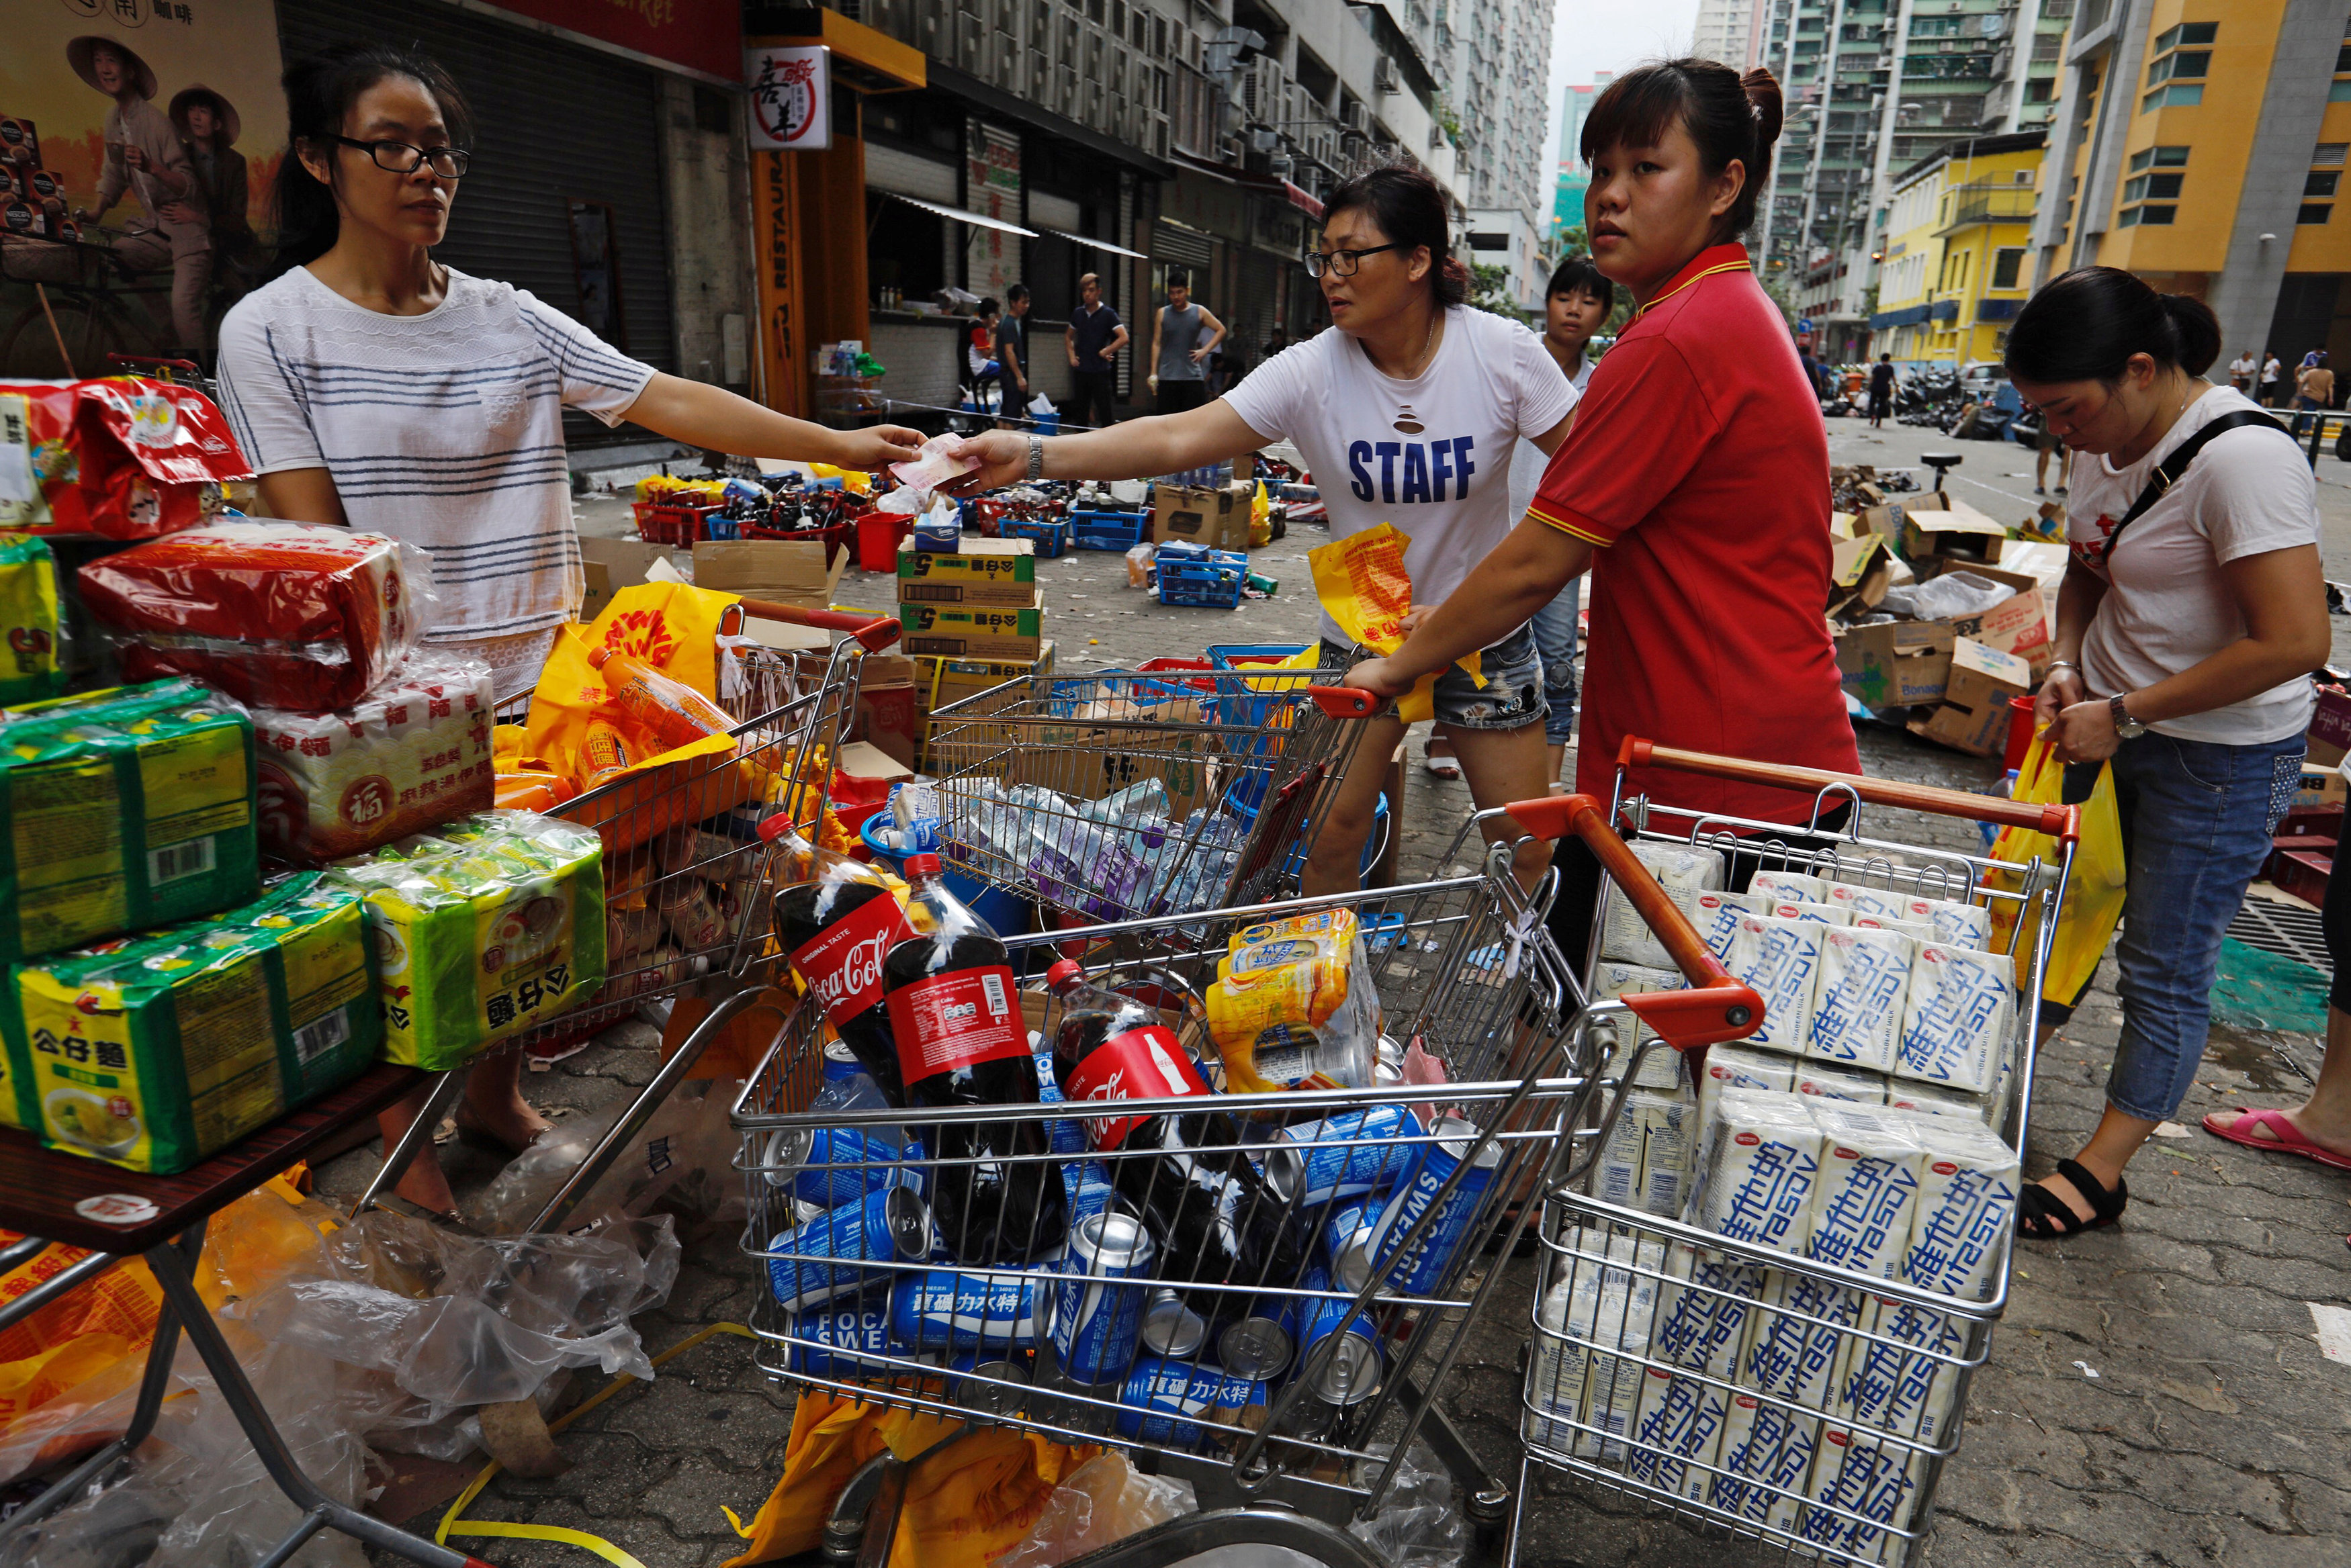 Supermarket staff sell goods outside a supermarket during power outages after Typhoon Hato hit in Macau, China August 24, 2017. REUTERS/Tyrone Siu